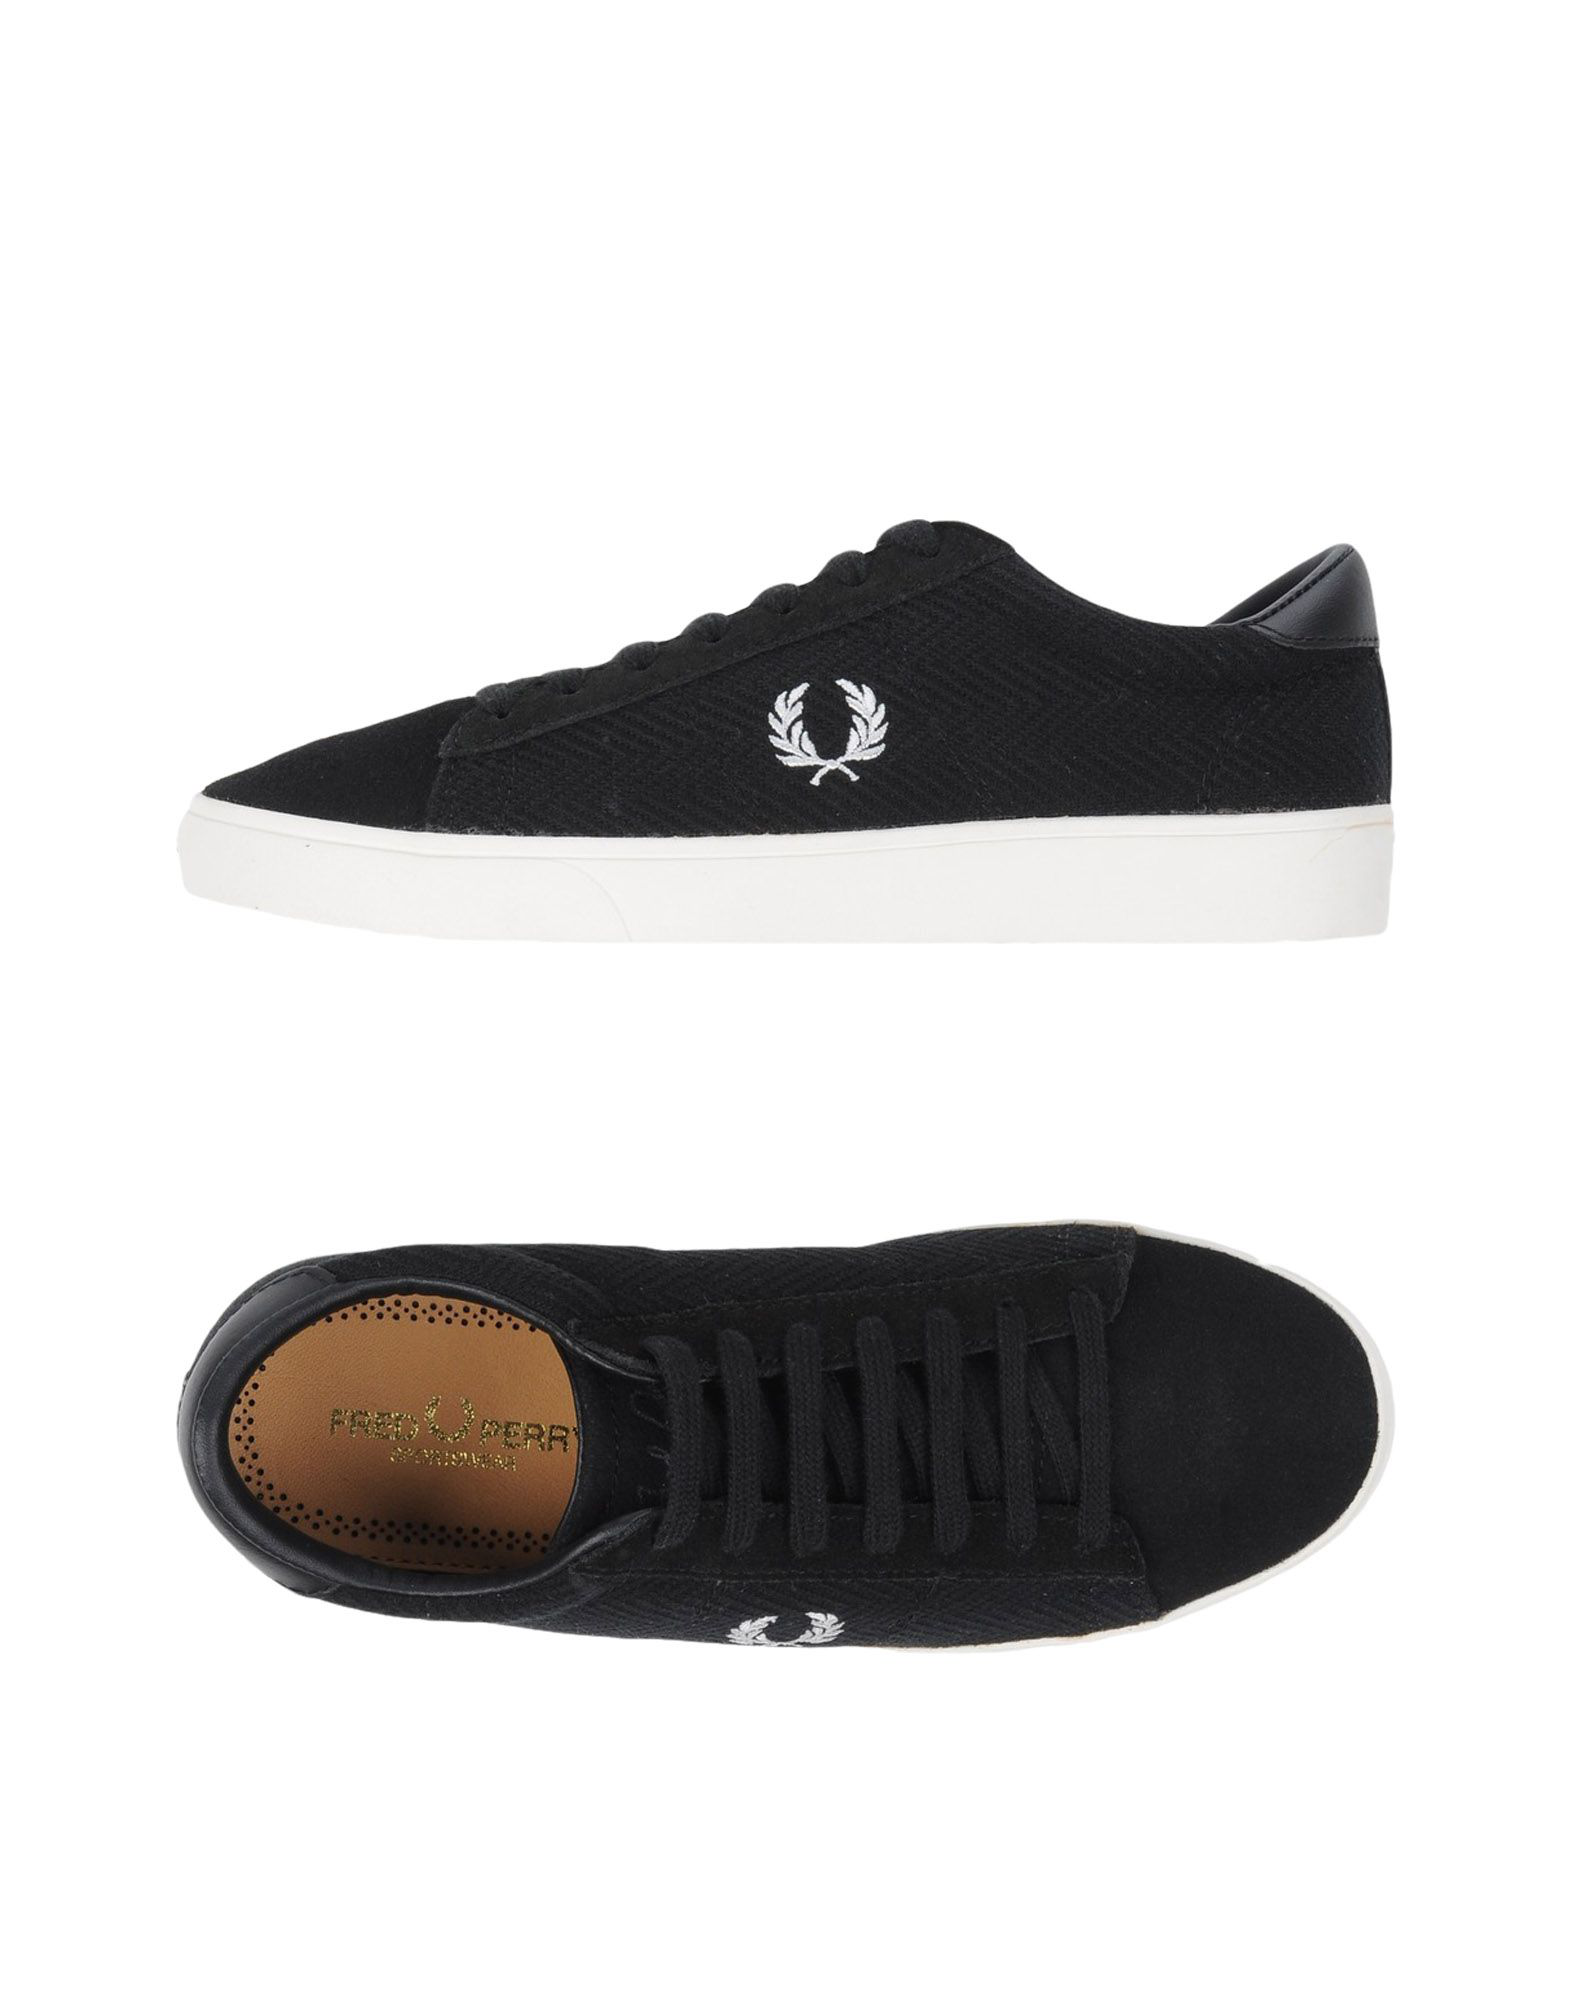 fred perry shoes size guide